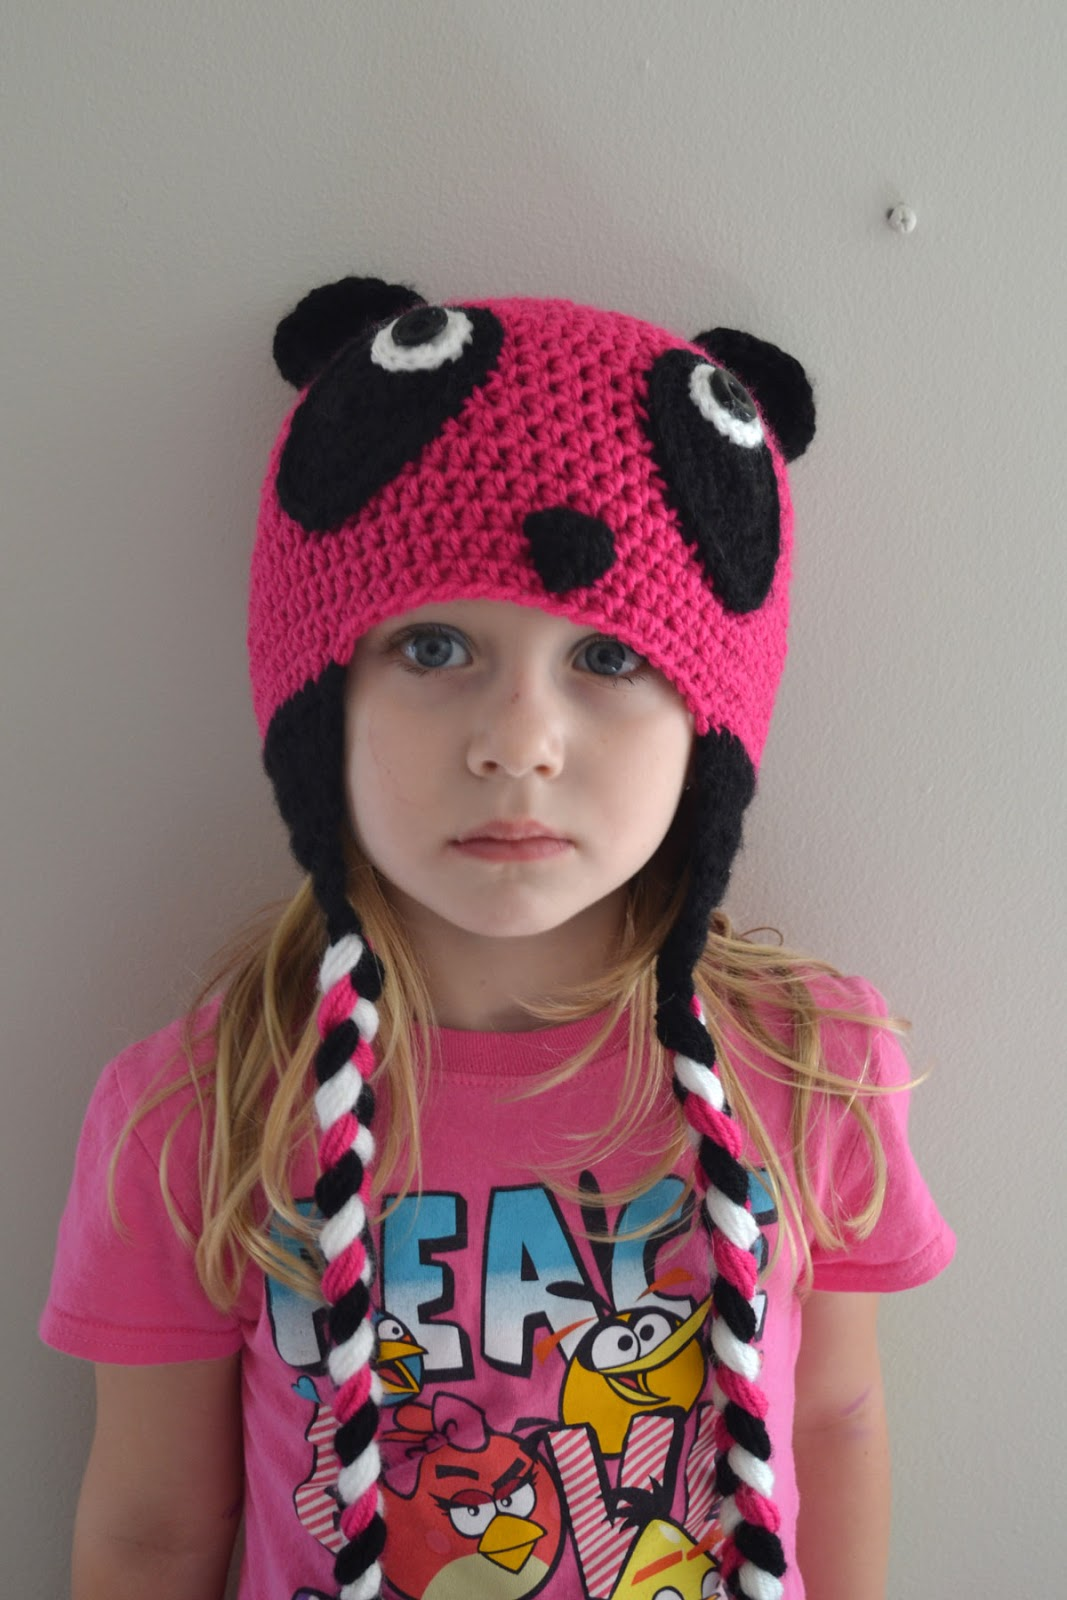 Crochet Hat Pattern For 6 Year Old : Crochet in Color: The Pink Panda